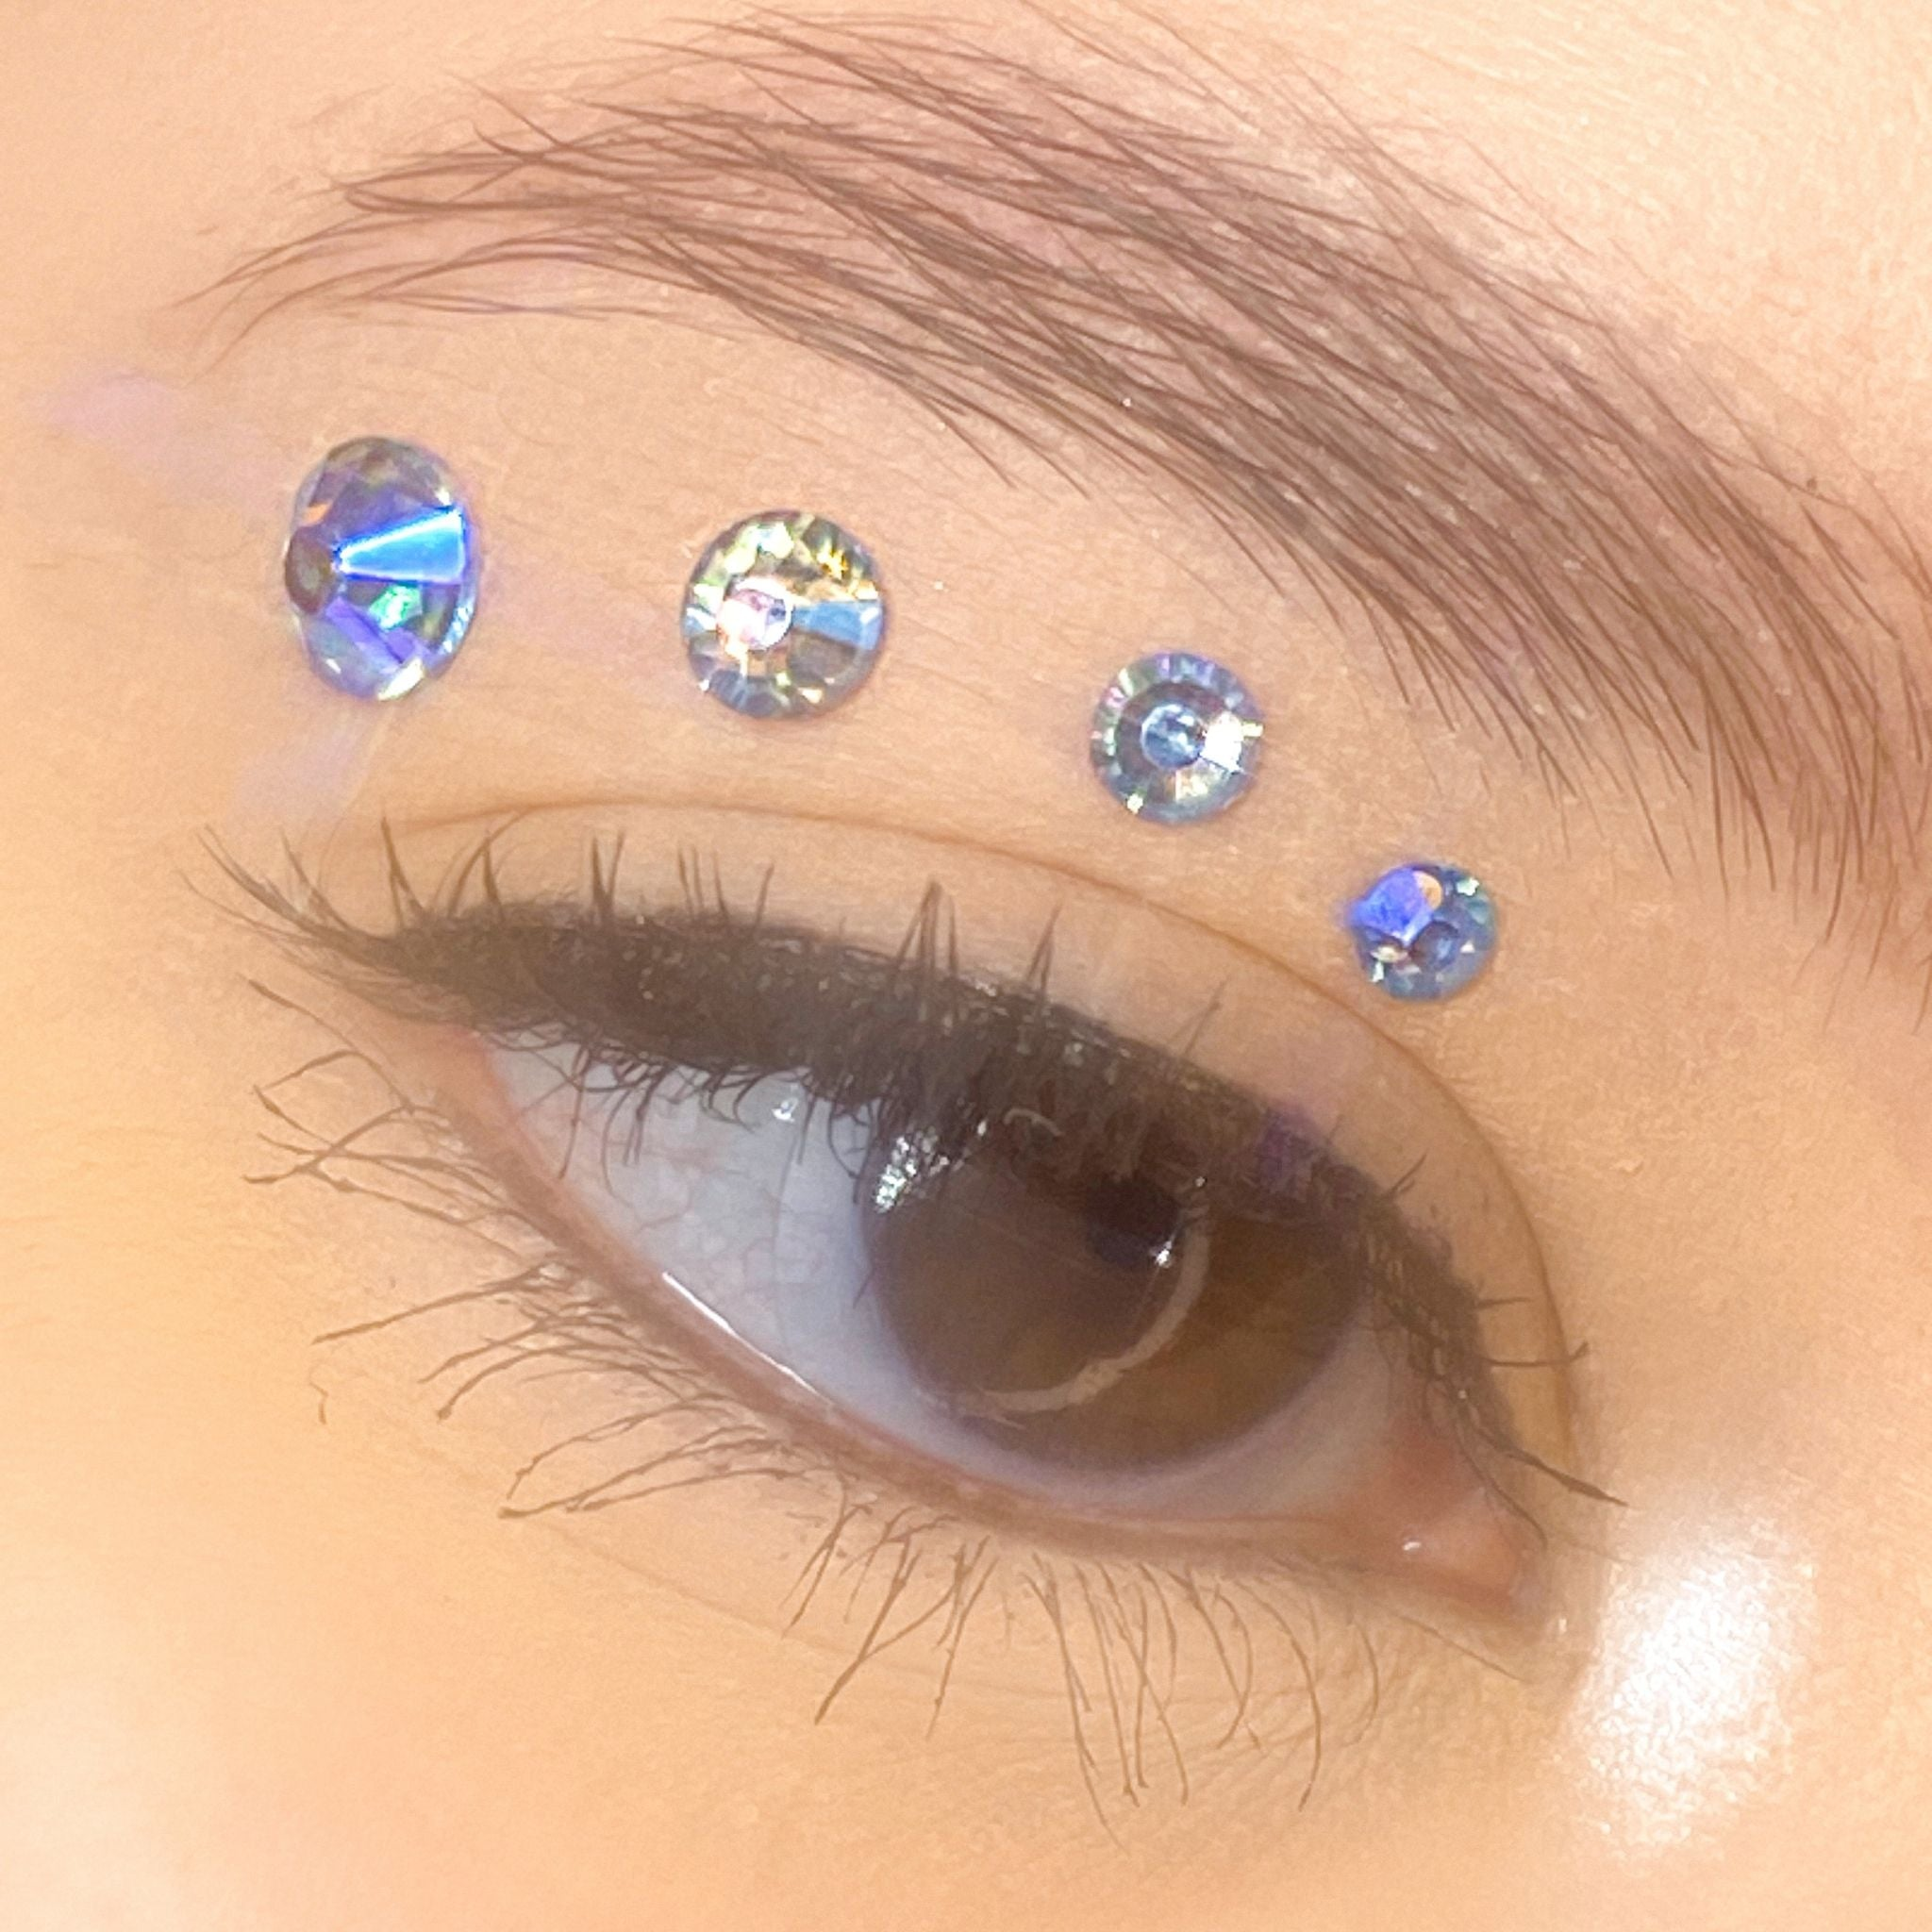 Holographic Light Blue Gems for makeup | Holographic Light Blue Rhinestones for makeup | Light Blue AB Swarovski Rhinestones | Light Blue AB Flatback Rhinestones | Euphoria Face Jewels | Glass Rhinestones | High Quality Gems